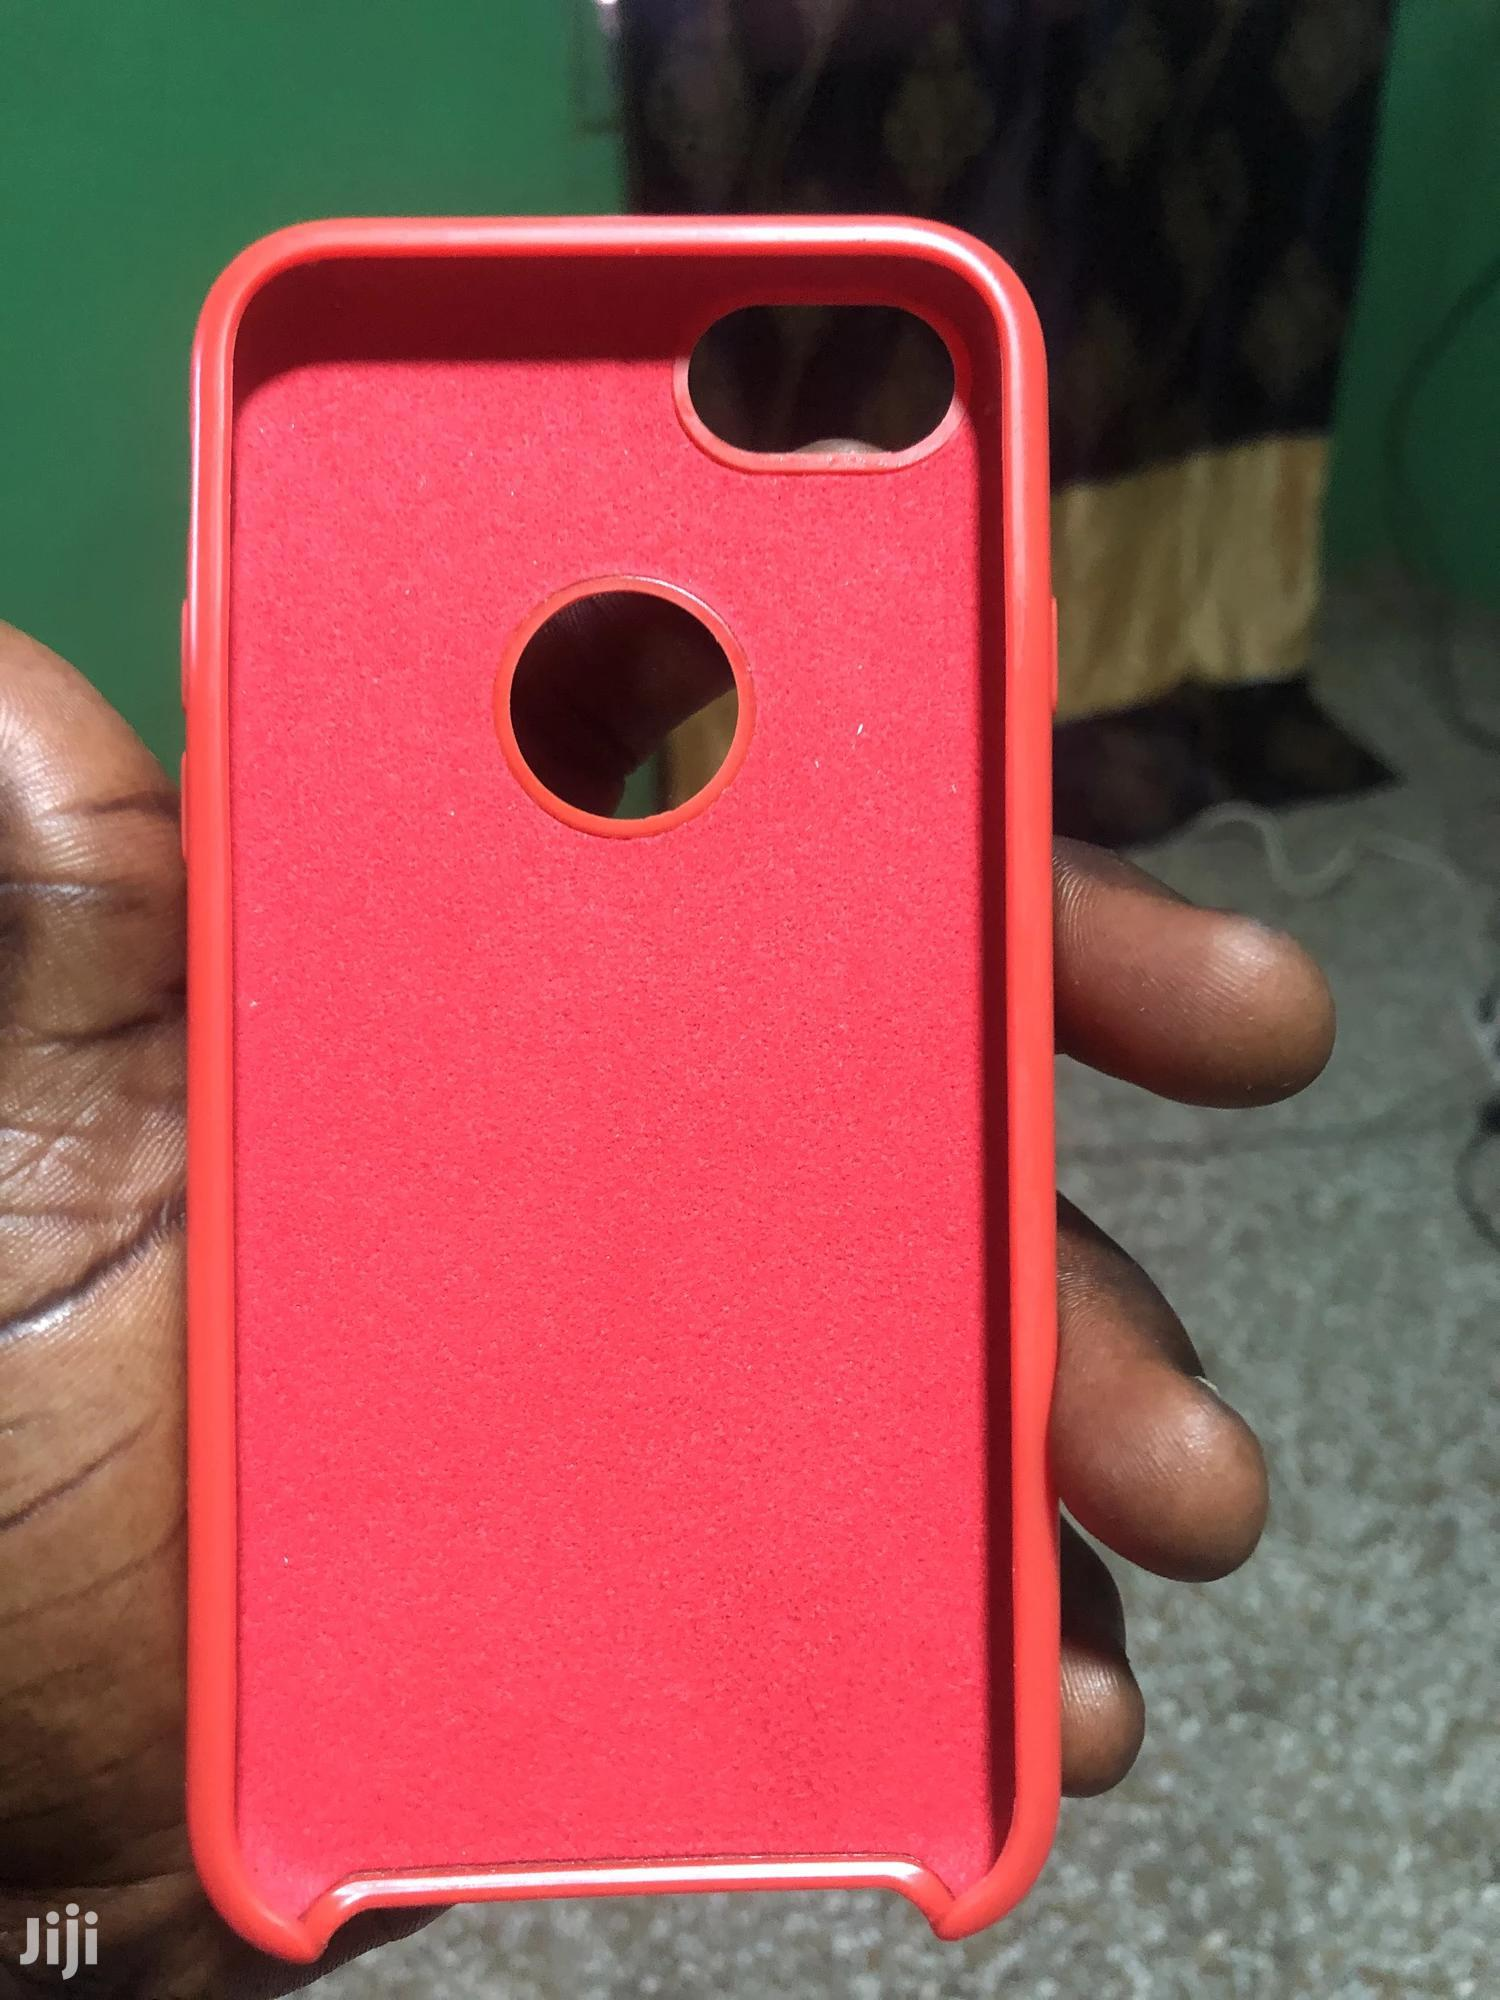 Apple iPhone 6s 64 GB Gold | Mobile Phones for sale in Ashaiman Municipal, Greater Accra, Ghana